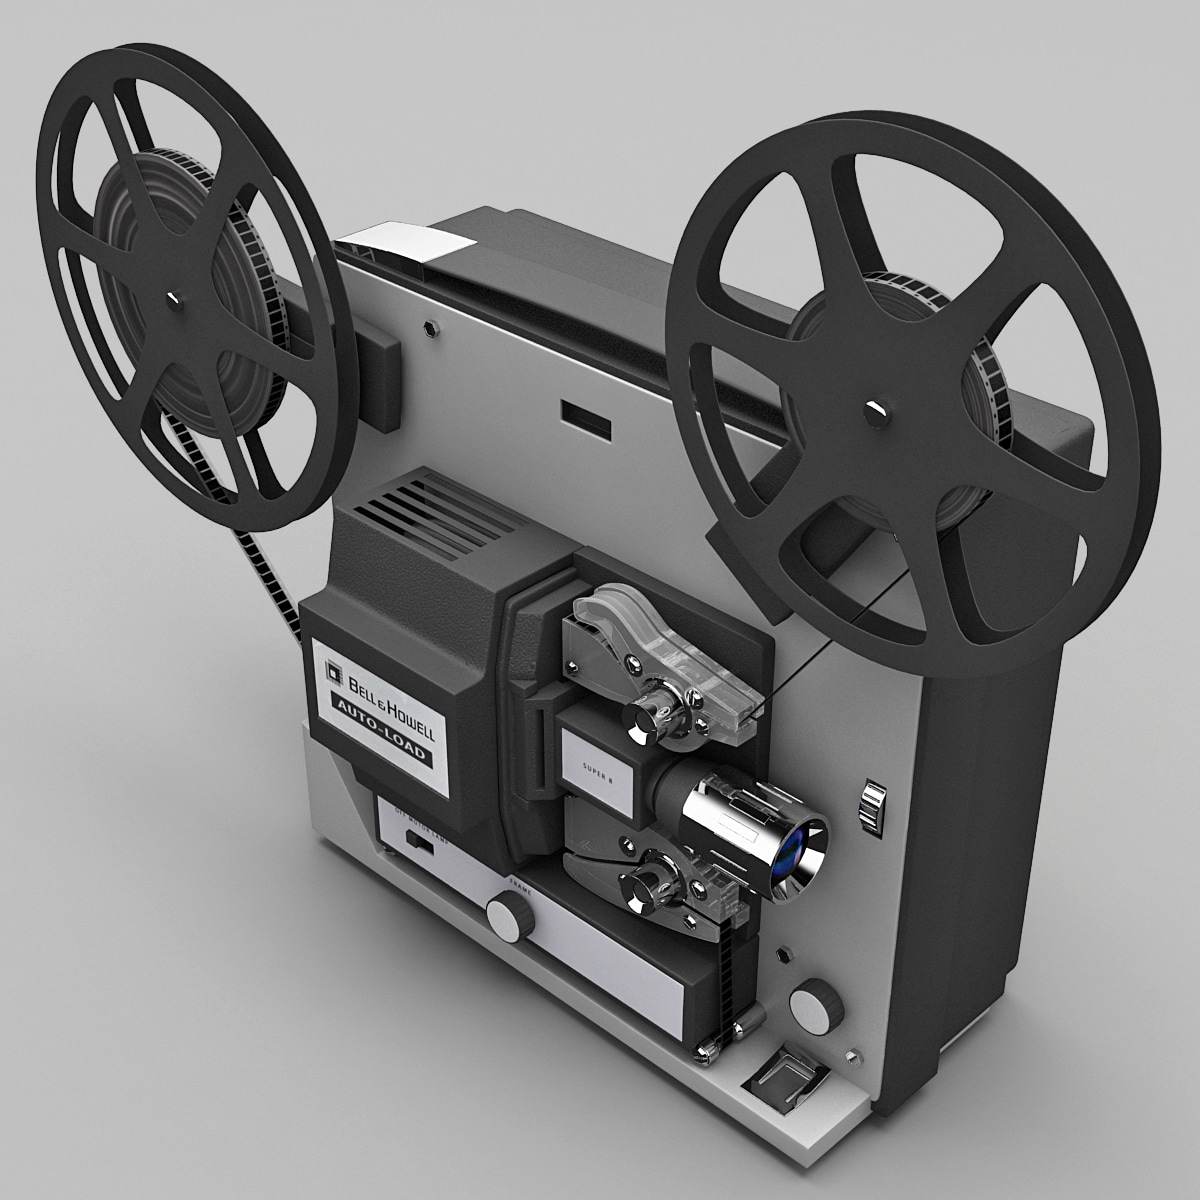 Old_Movie_Projector_Bell_and_Howell_8mm_Model_461A_0001.jpg